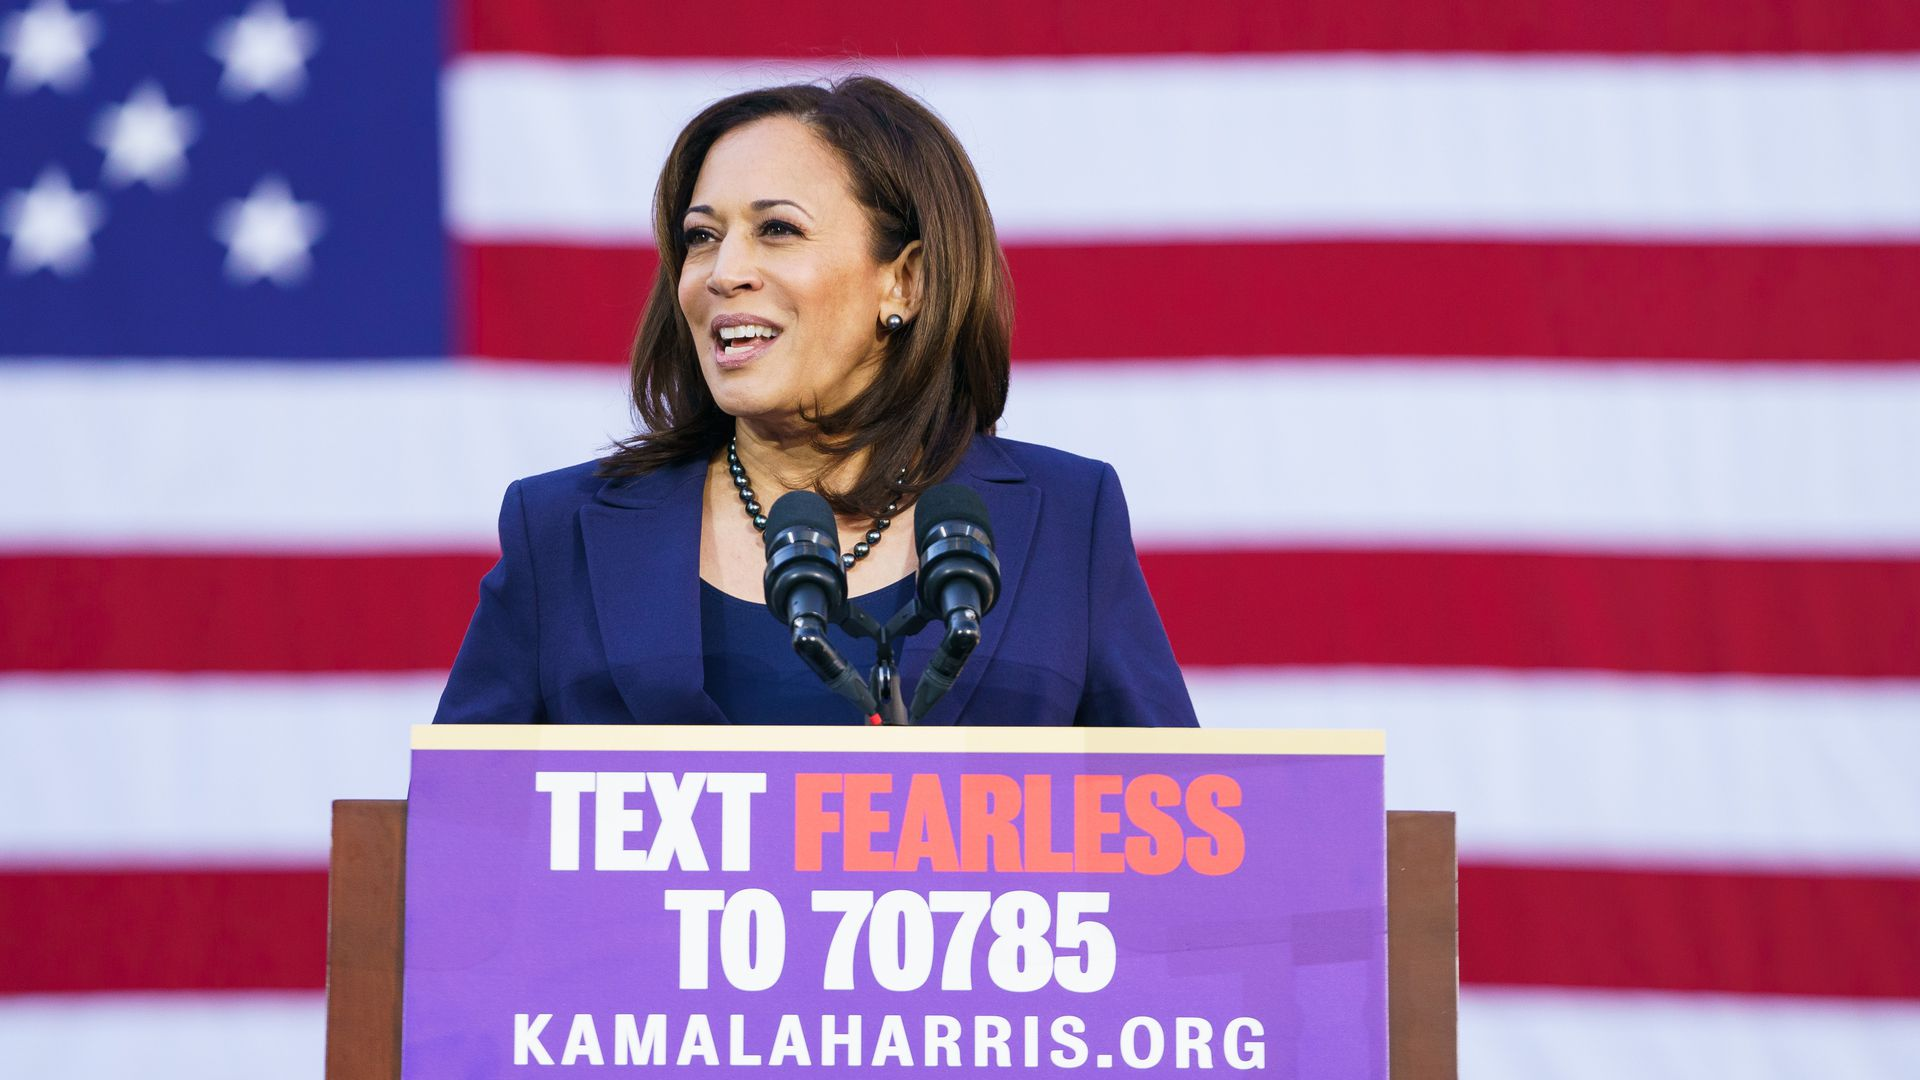 Kamala Harris on the issues, in under 500 words - Axios